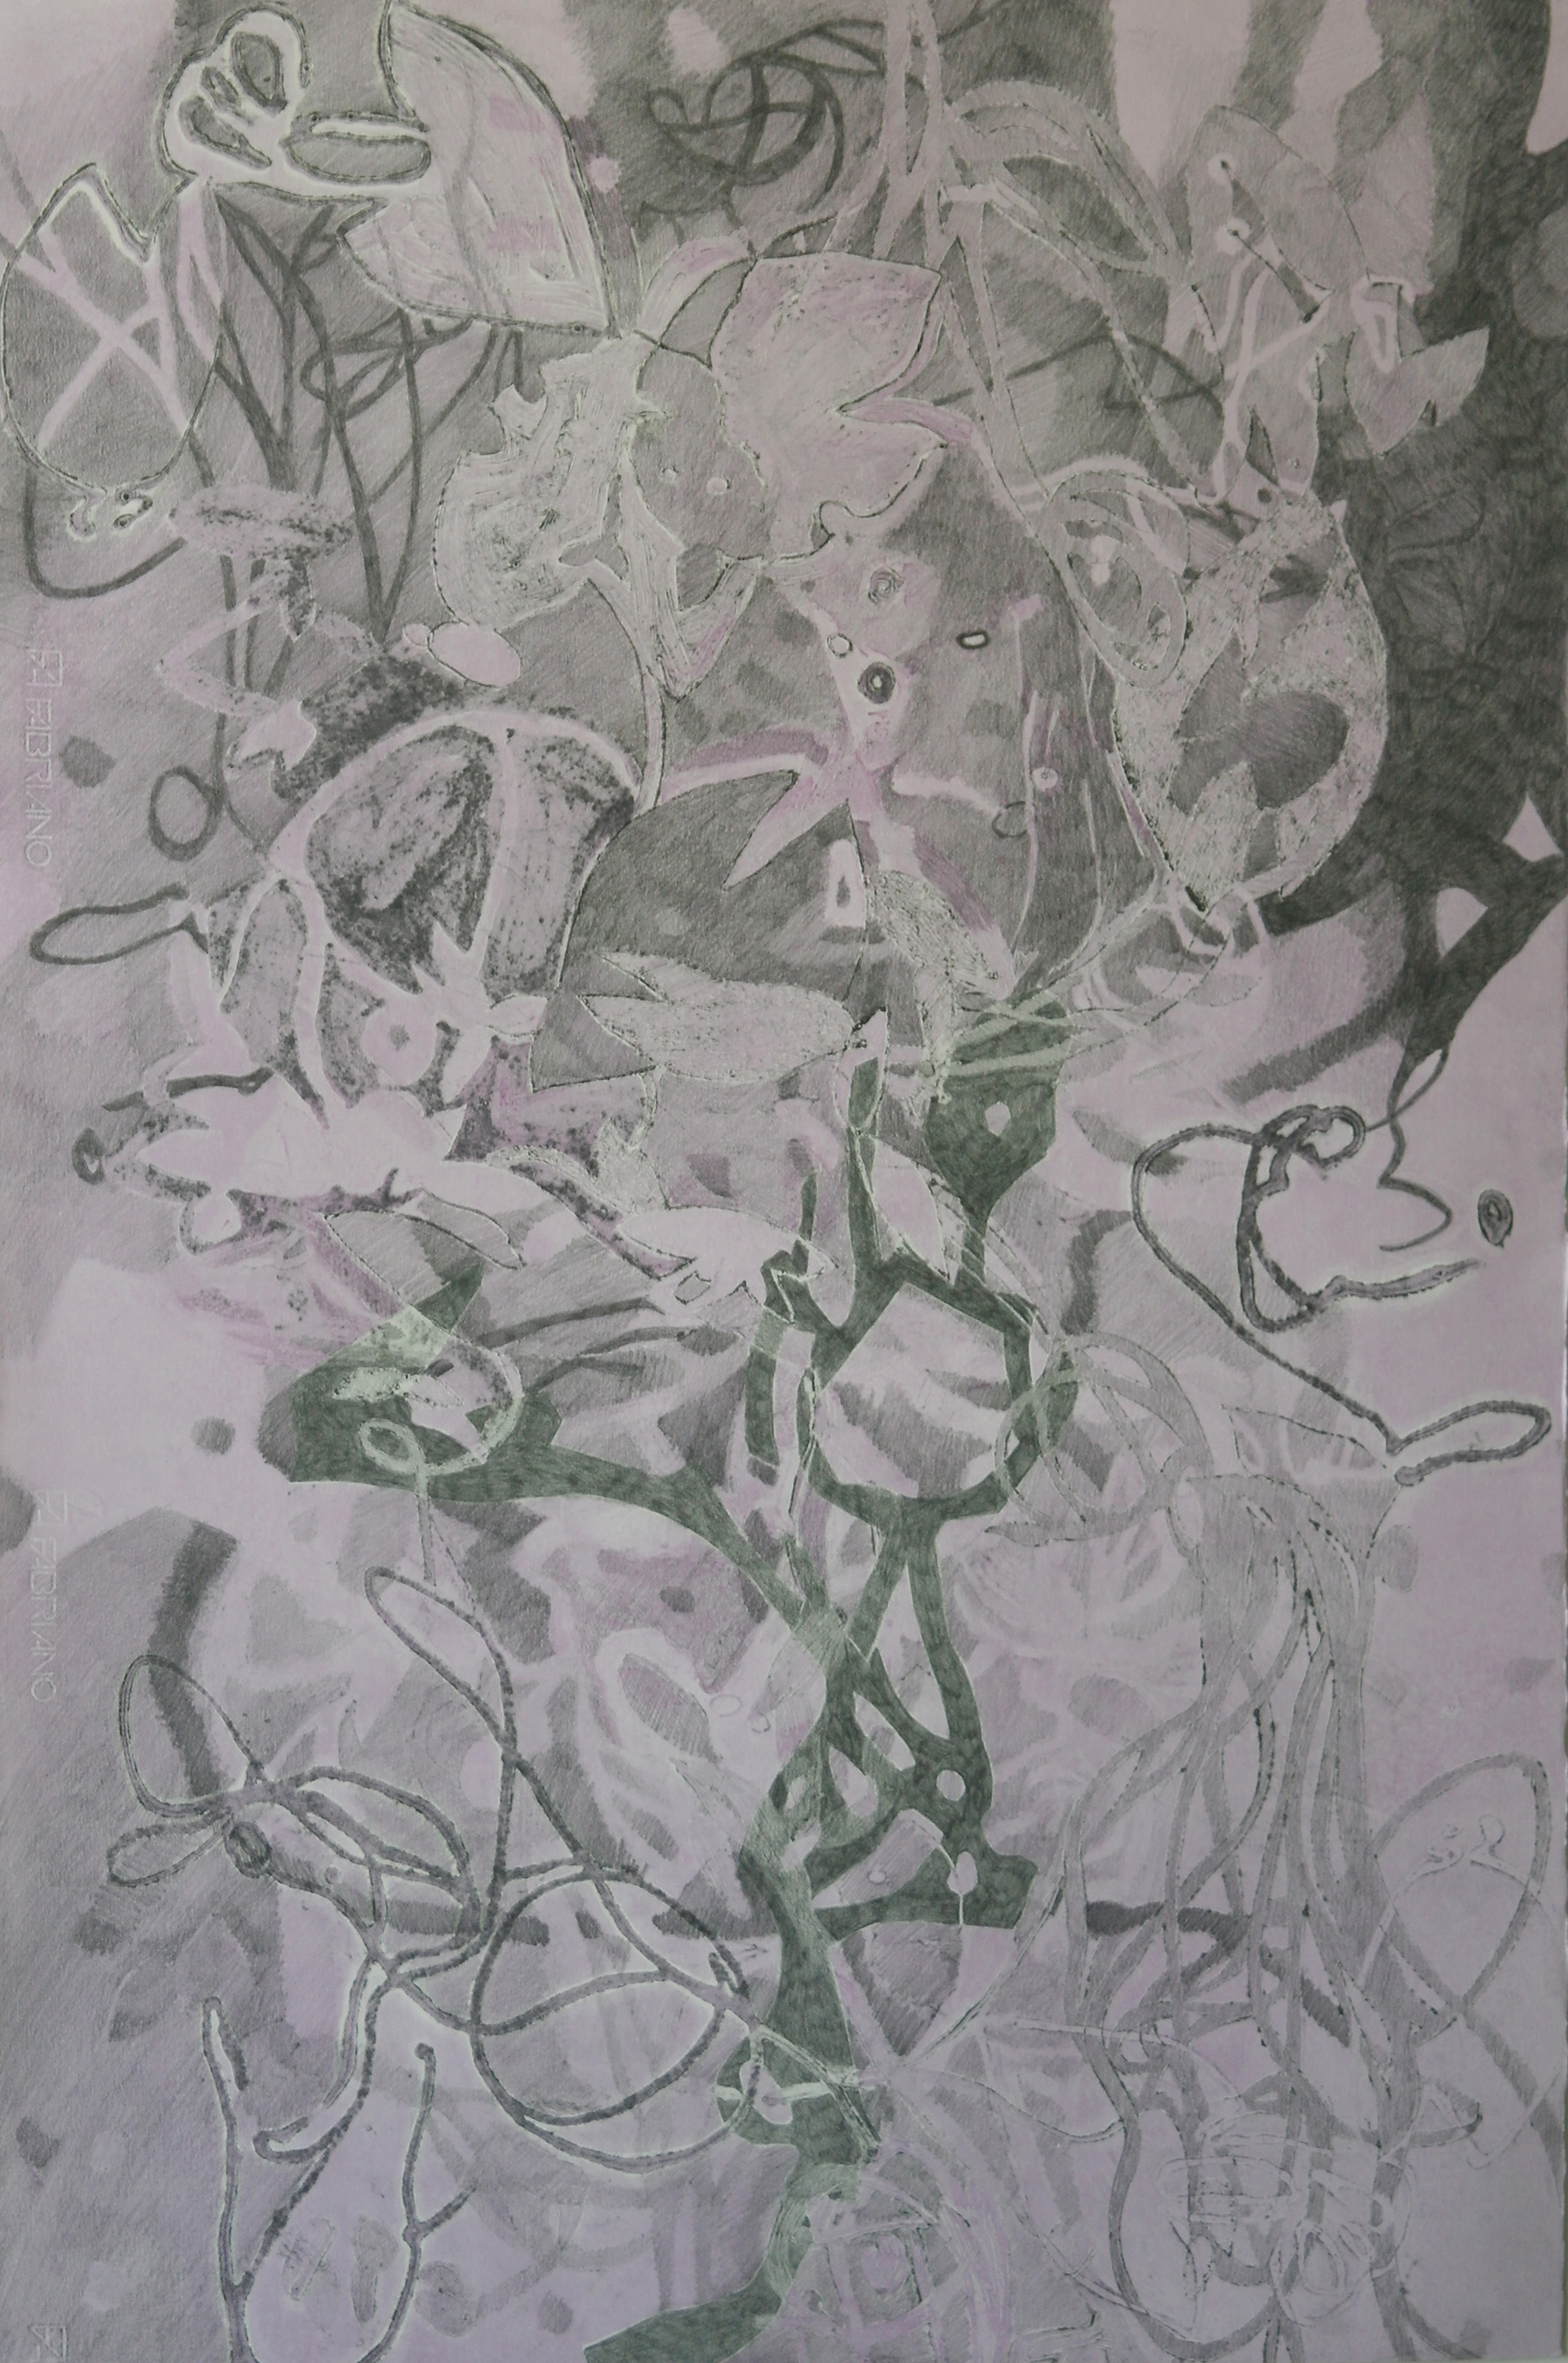 "Swamp 2, 30"" x 22"" Intaglio, relief and graphite hand drawing"